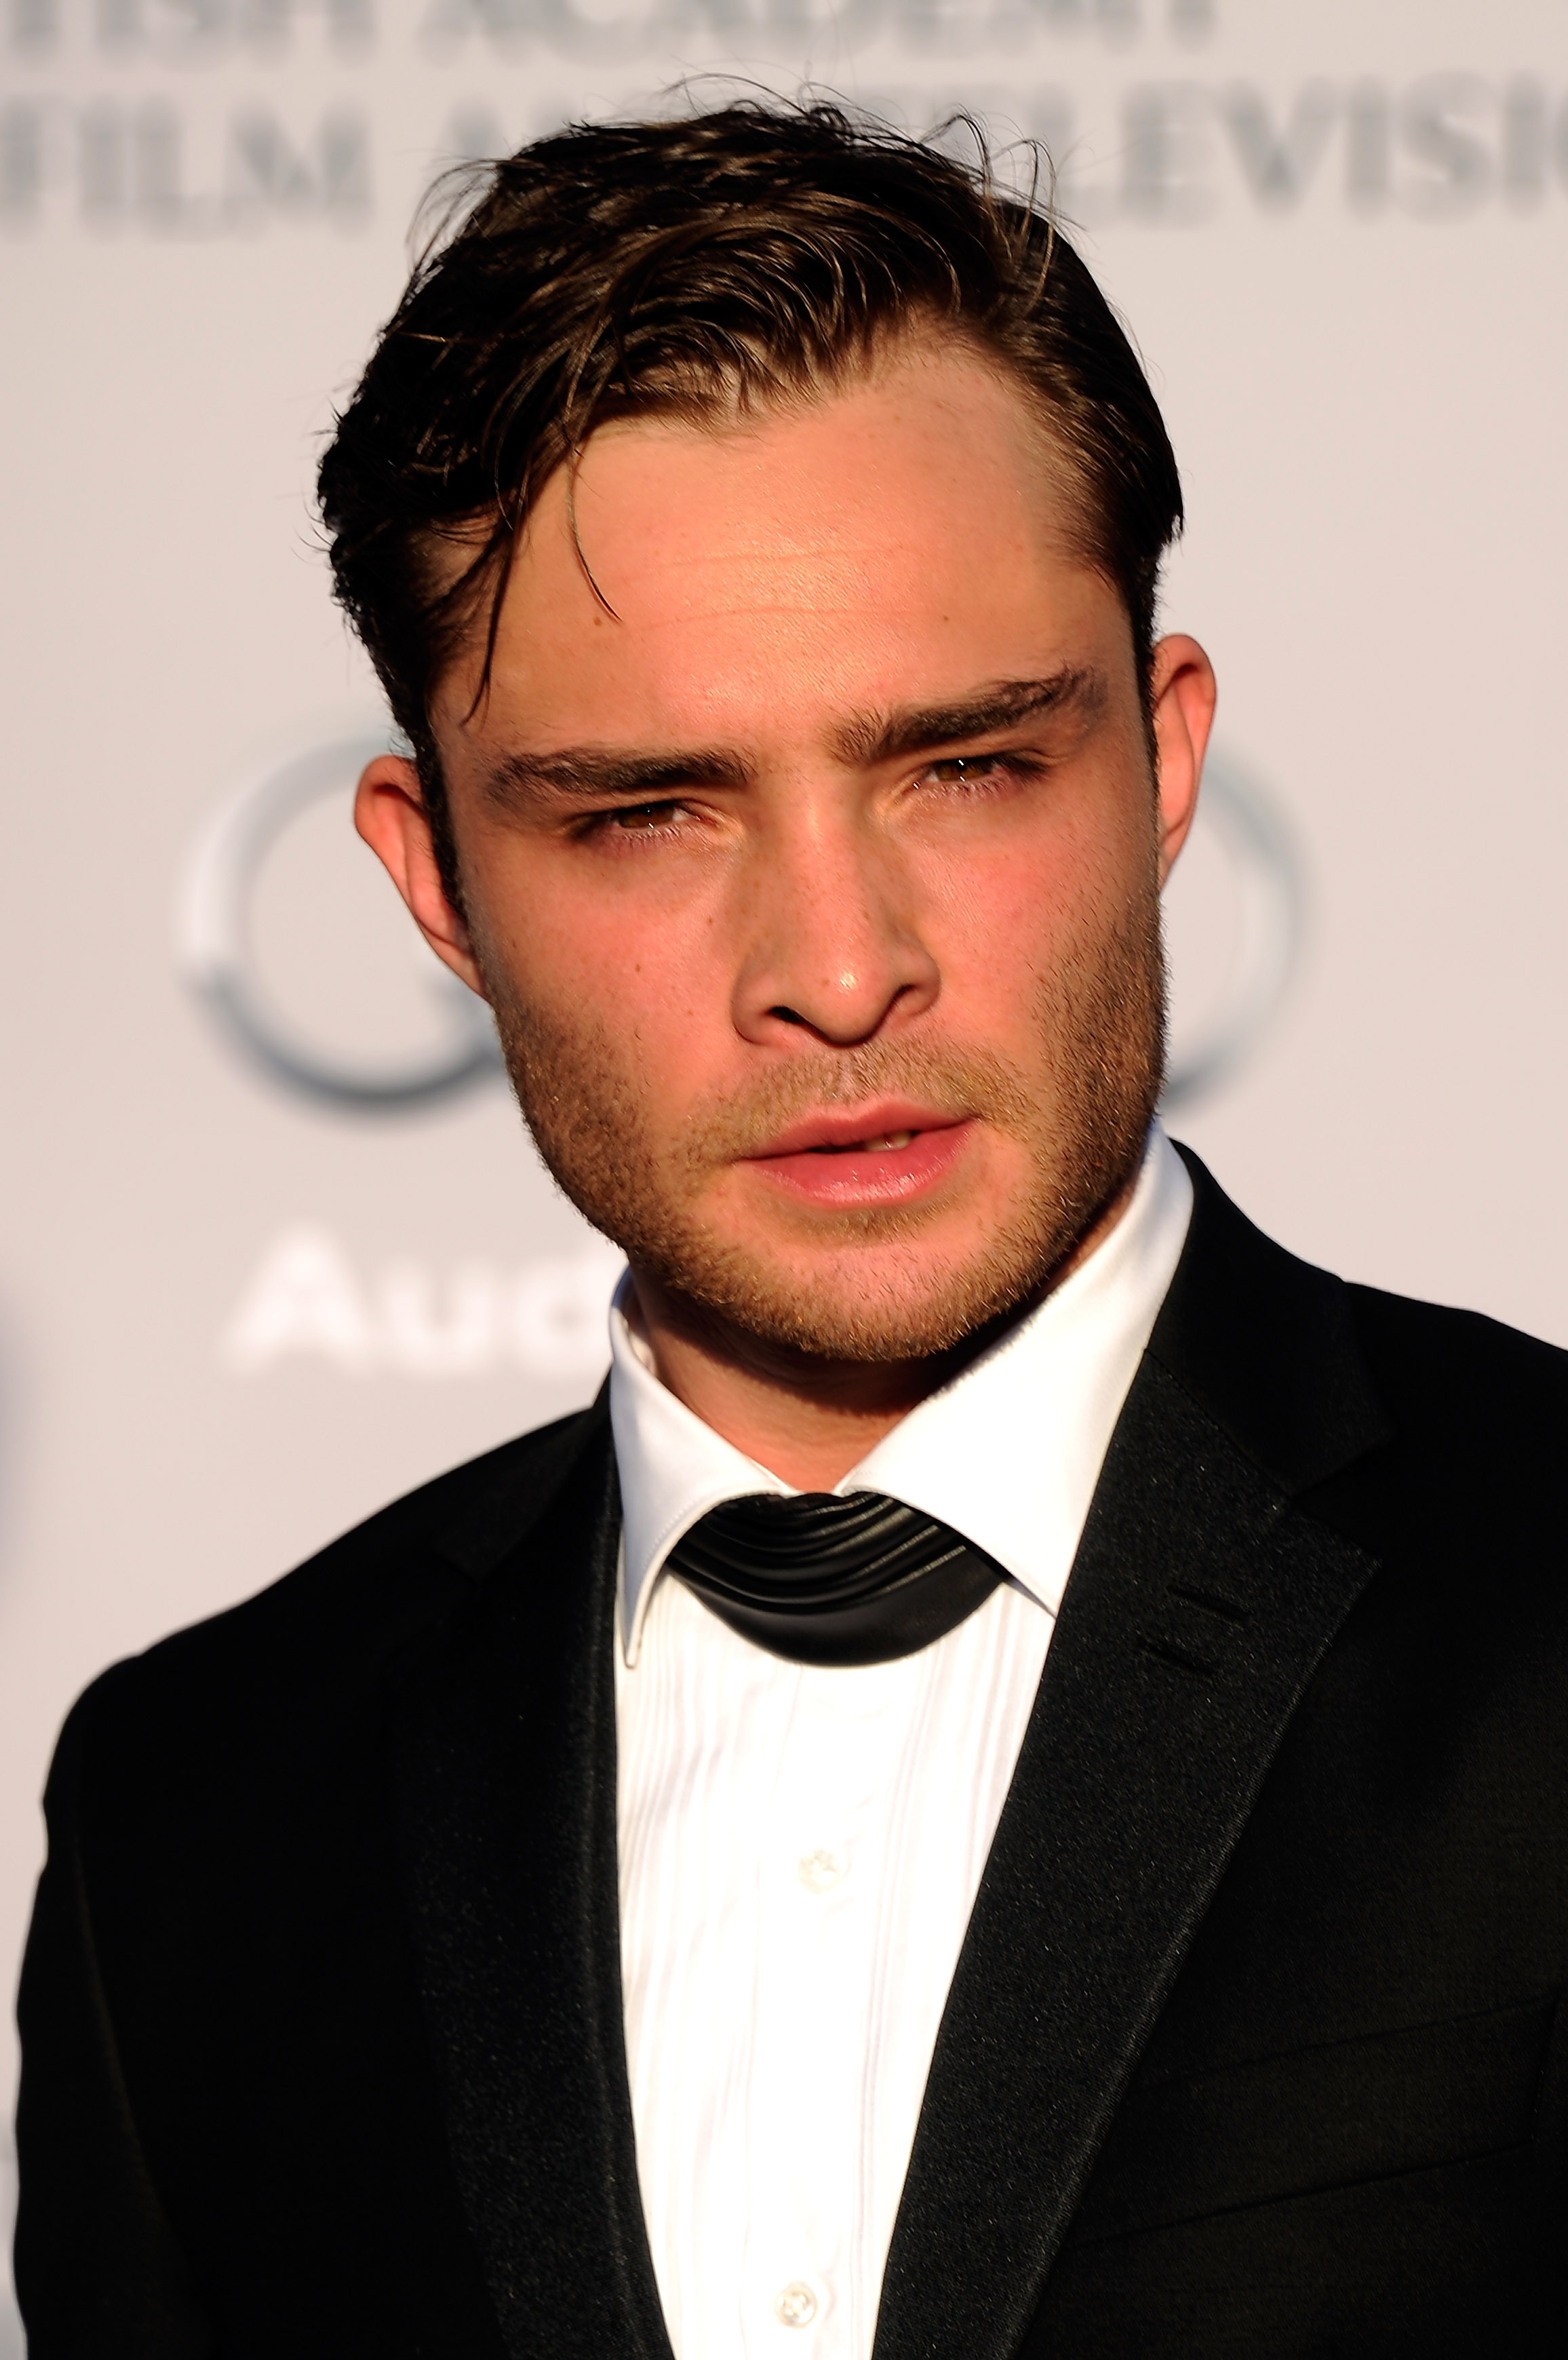 Ed Westwick at the BAFTA Brits to Watch event in LA.